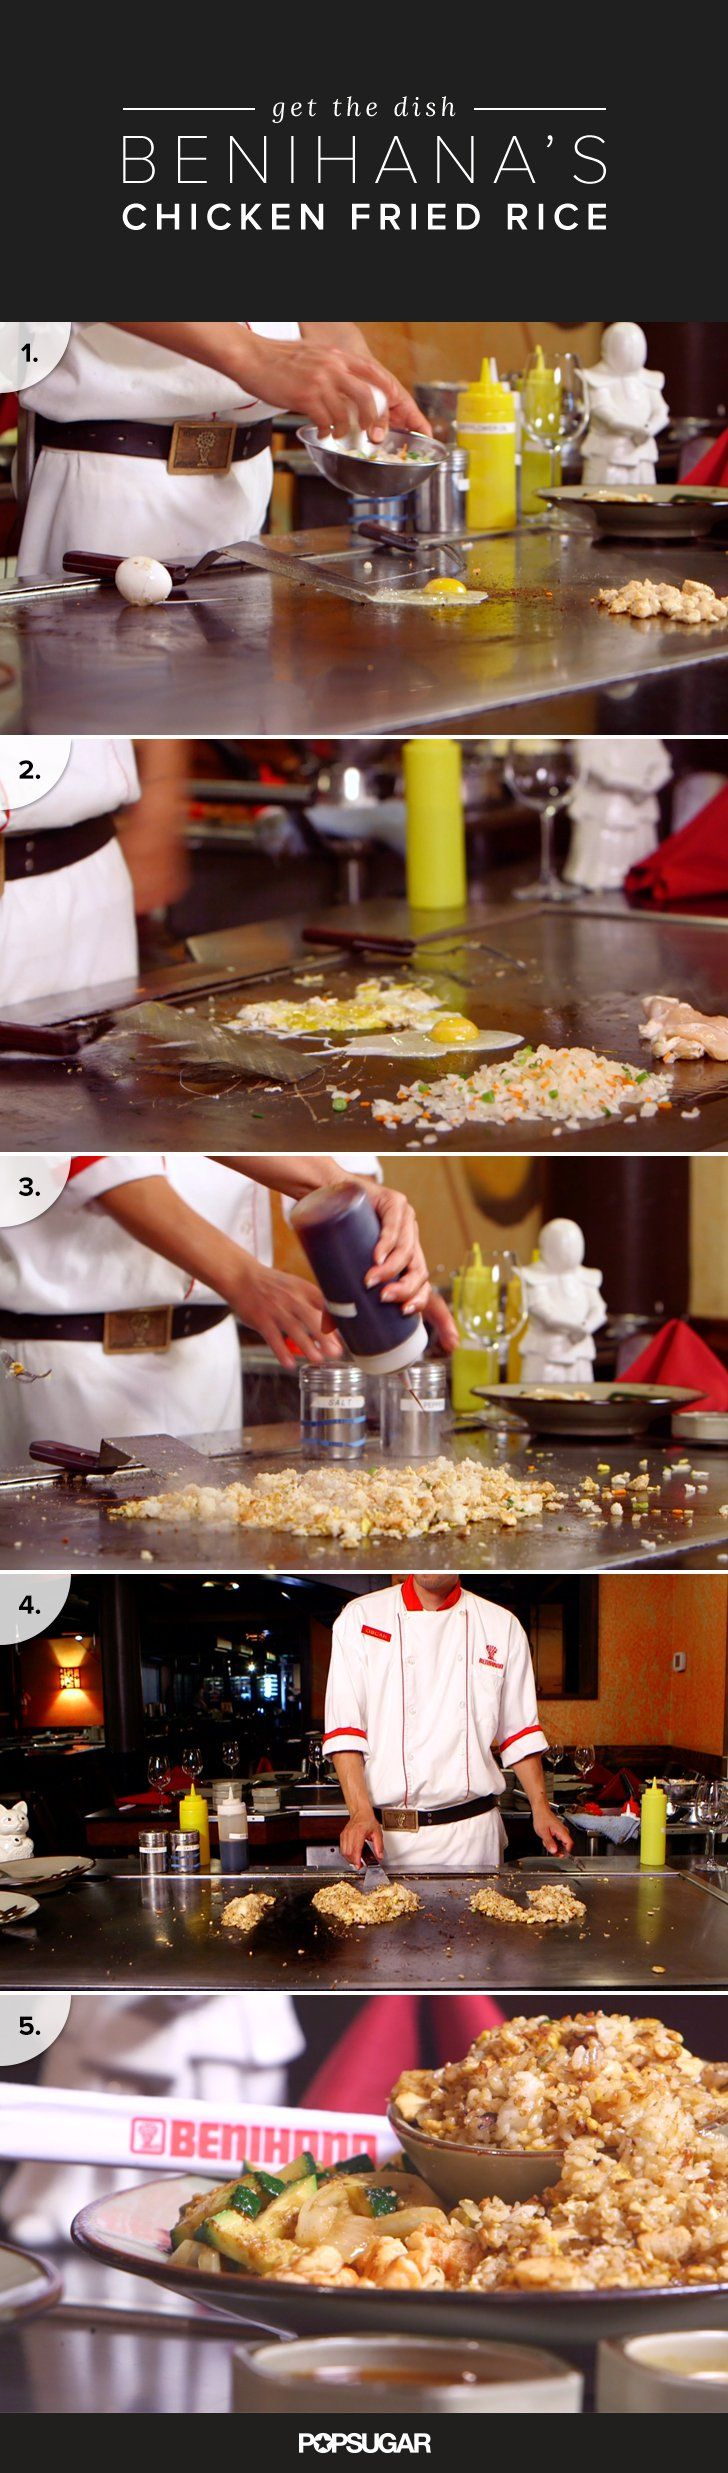 Get the Dish, Benihana chef Oscar Briseno shows us how to master the restaurant's chicken fried rice and demonstrates how a few of the iconic tricks and flourishes are performed.